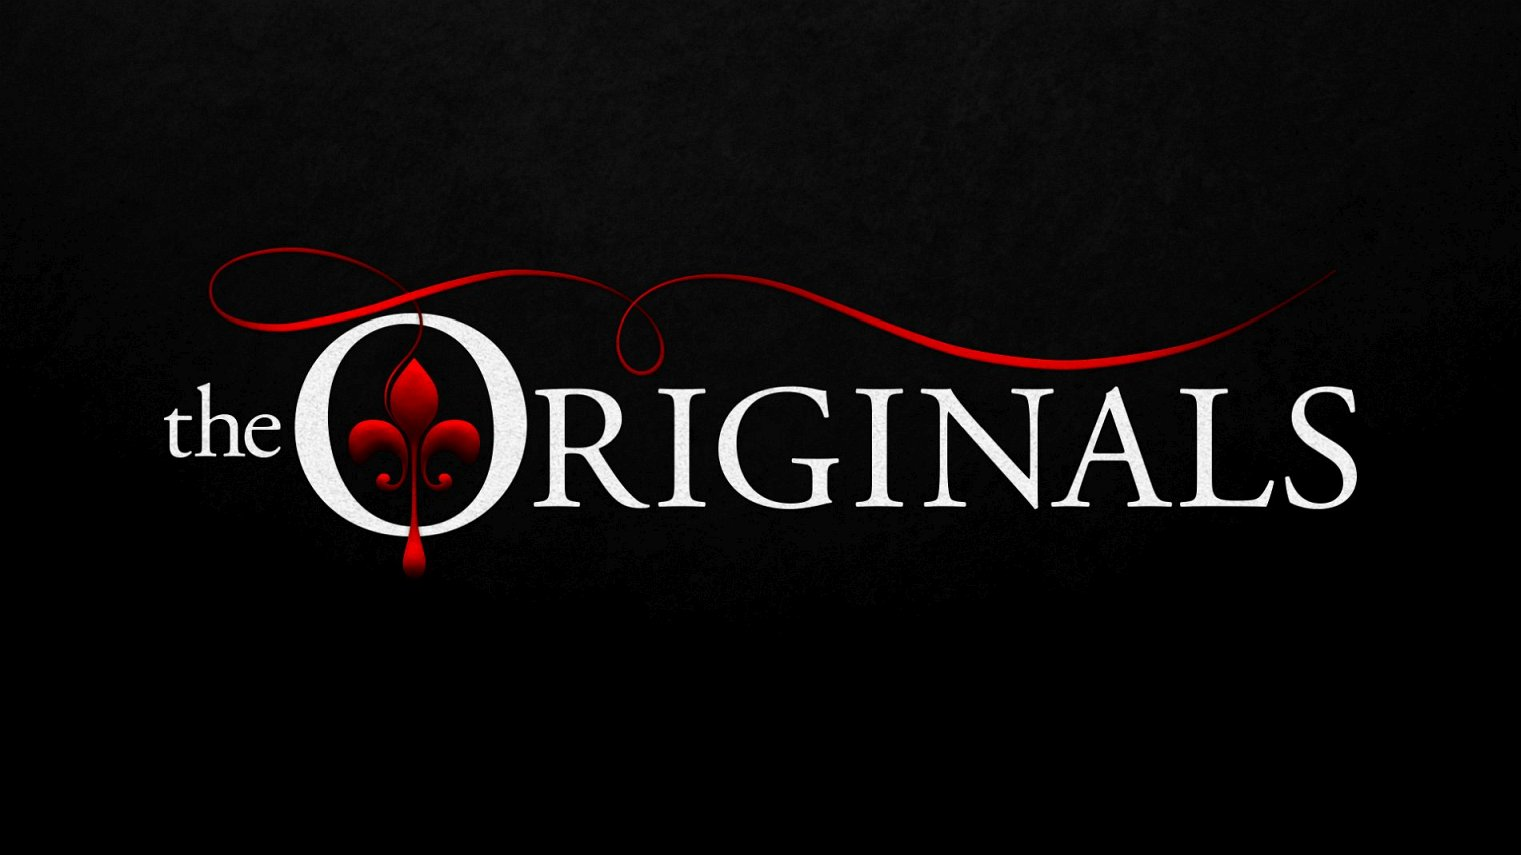 what time does The Originals come on